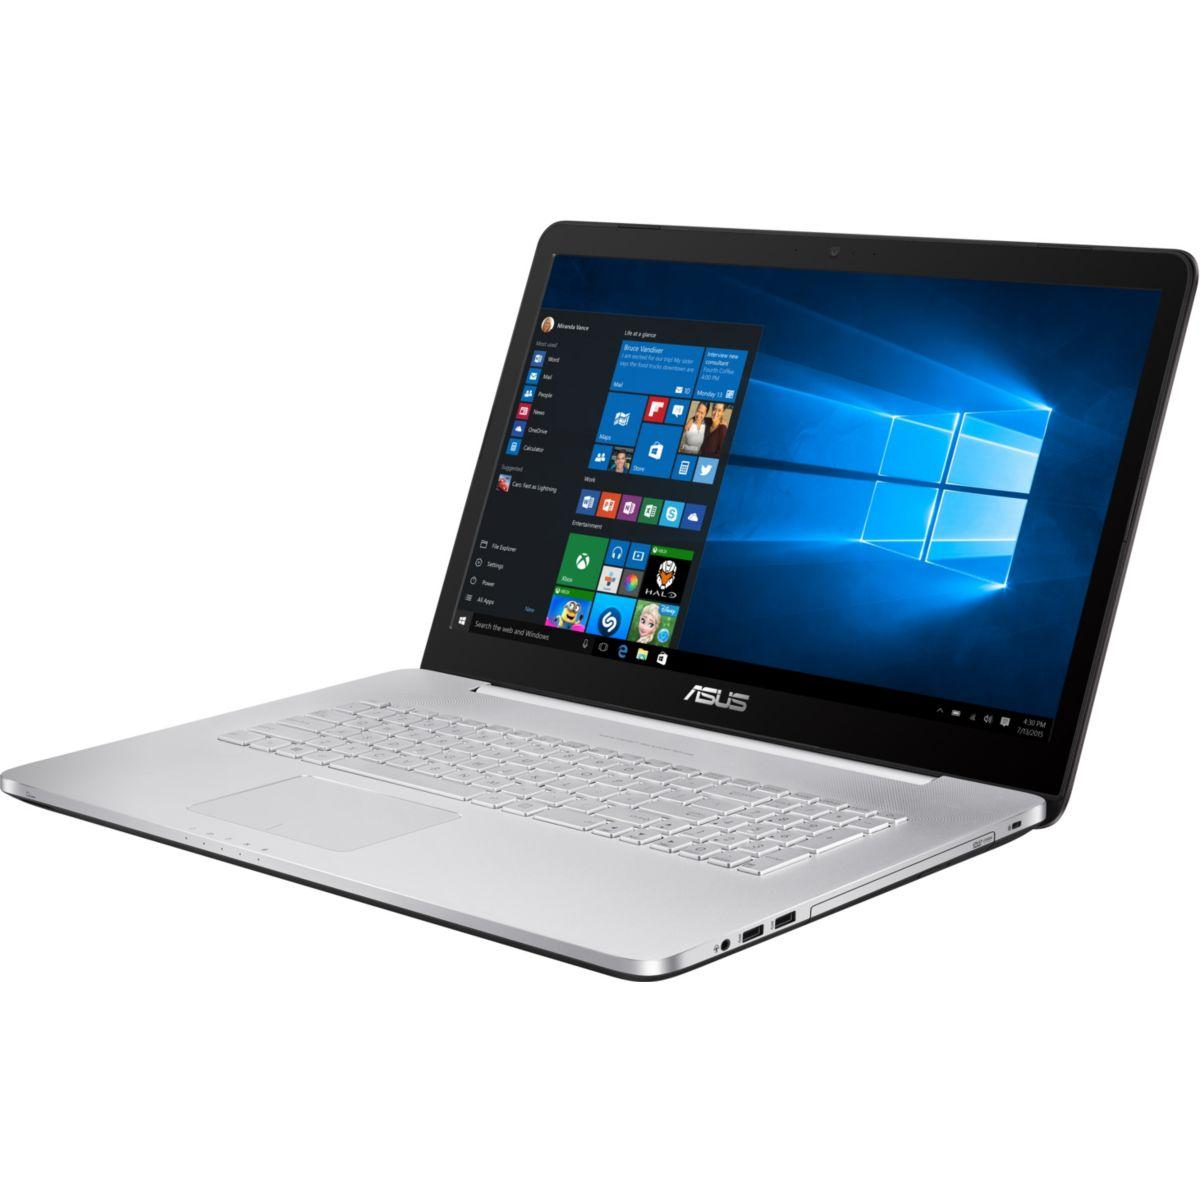 Portable asus n752vx-gb298t - 5% de remise : code multi5 (photo)